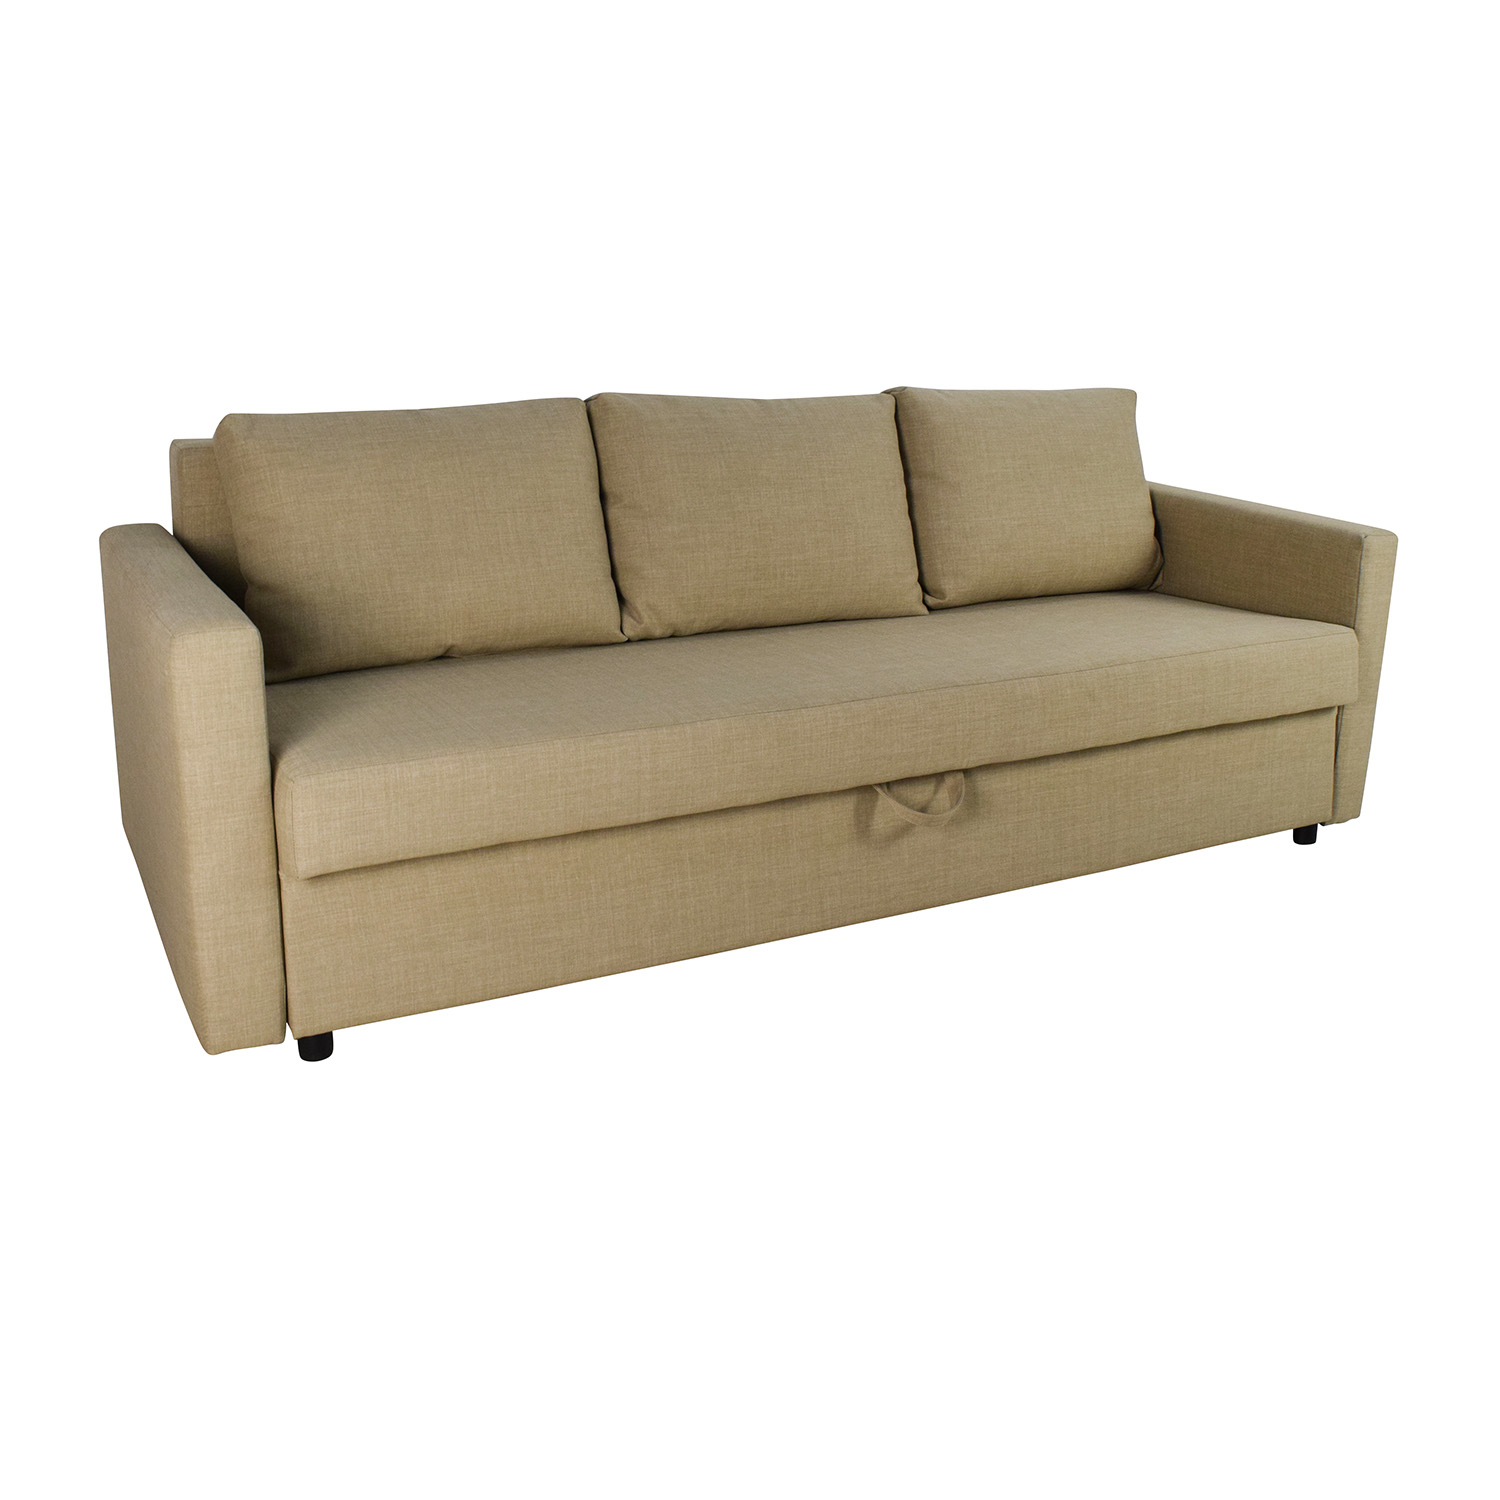 62 off ikea friheten sleeper sofa with storage sofas Storage loveseat